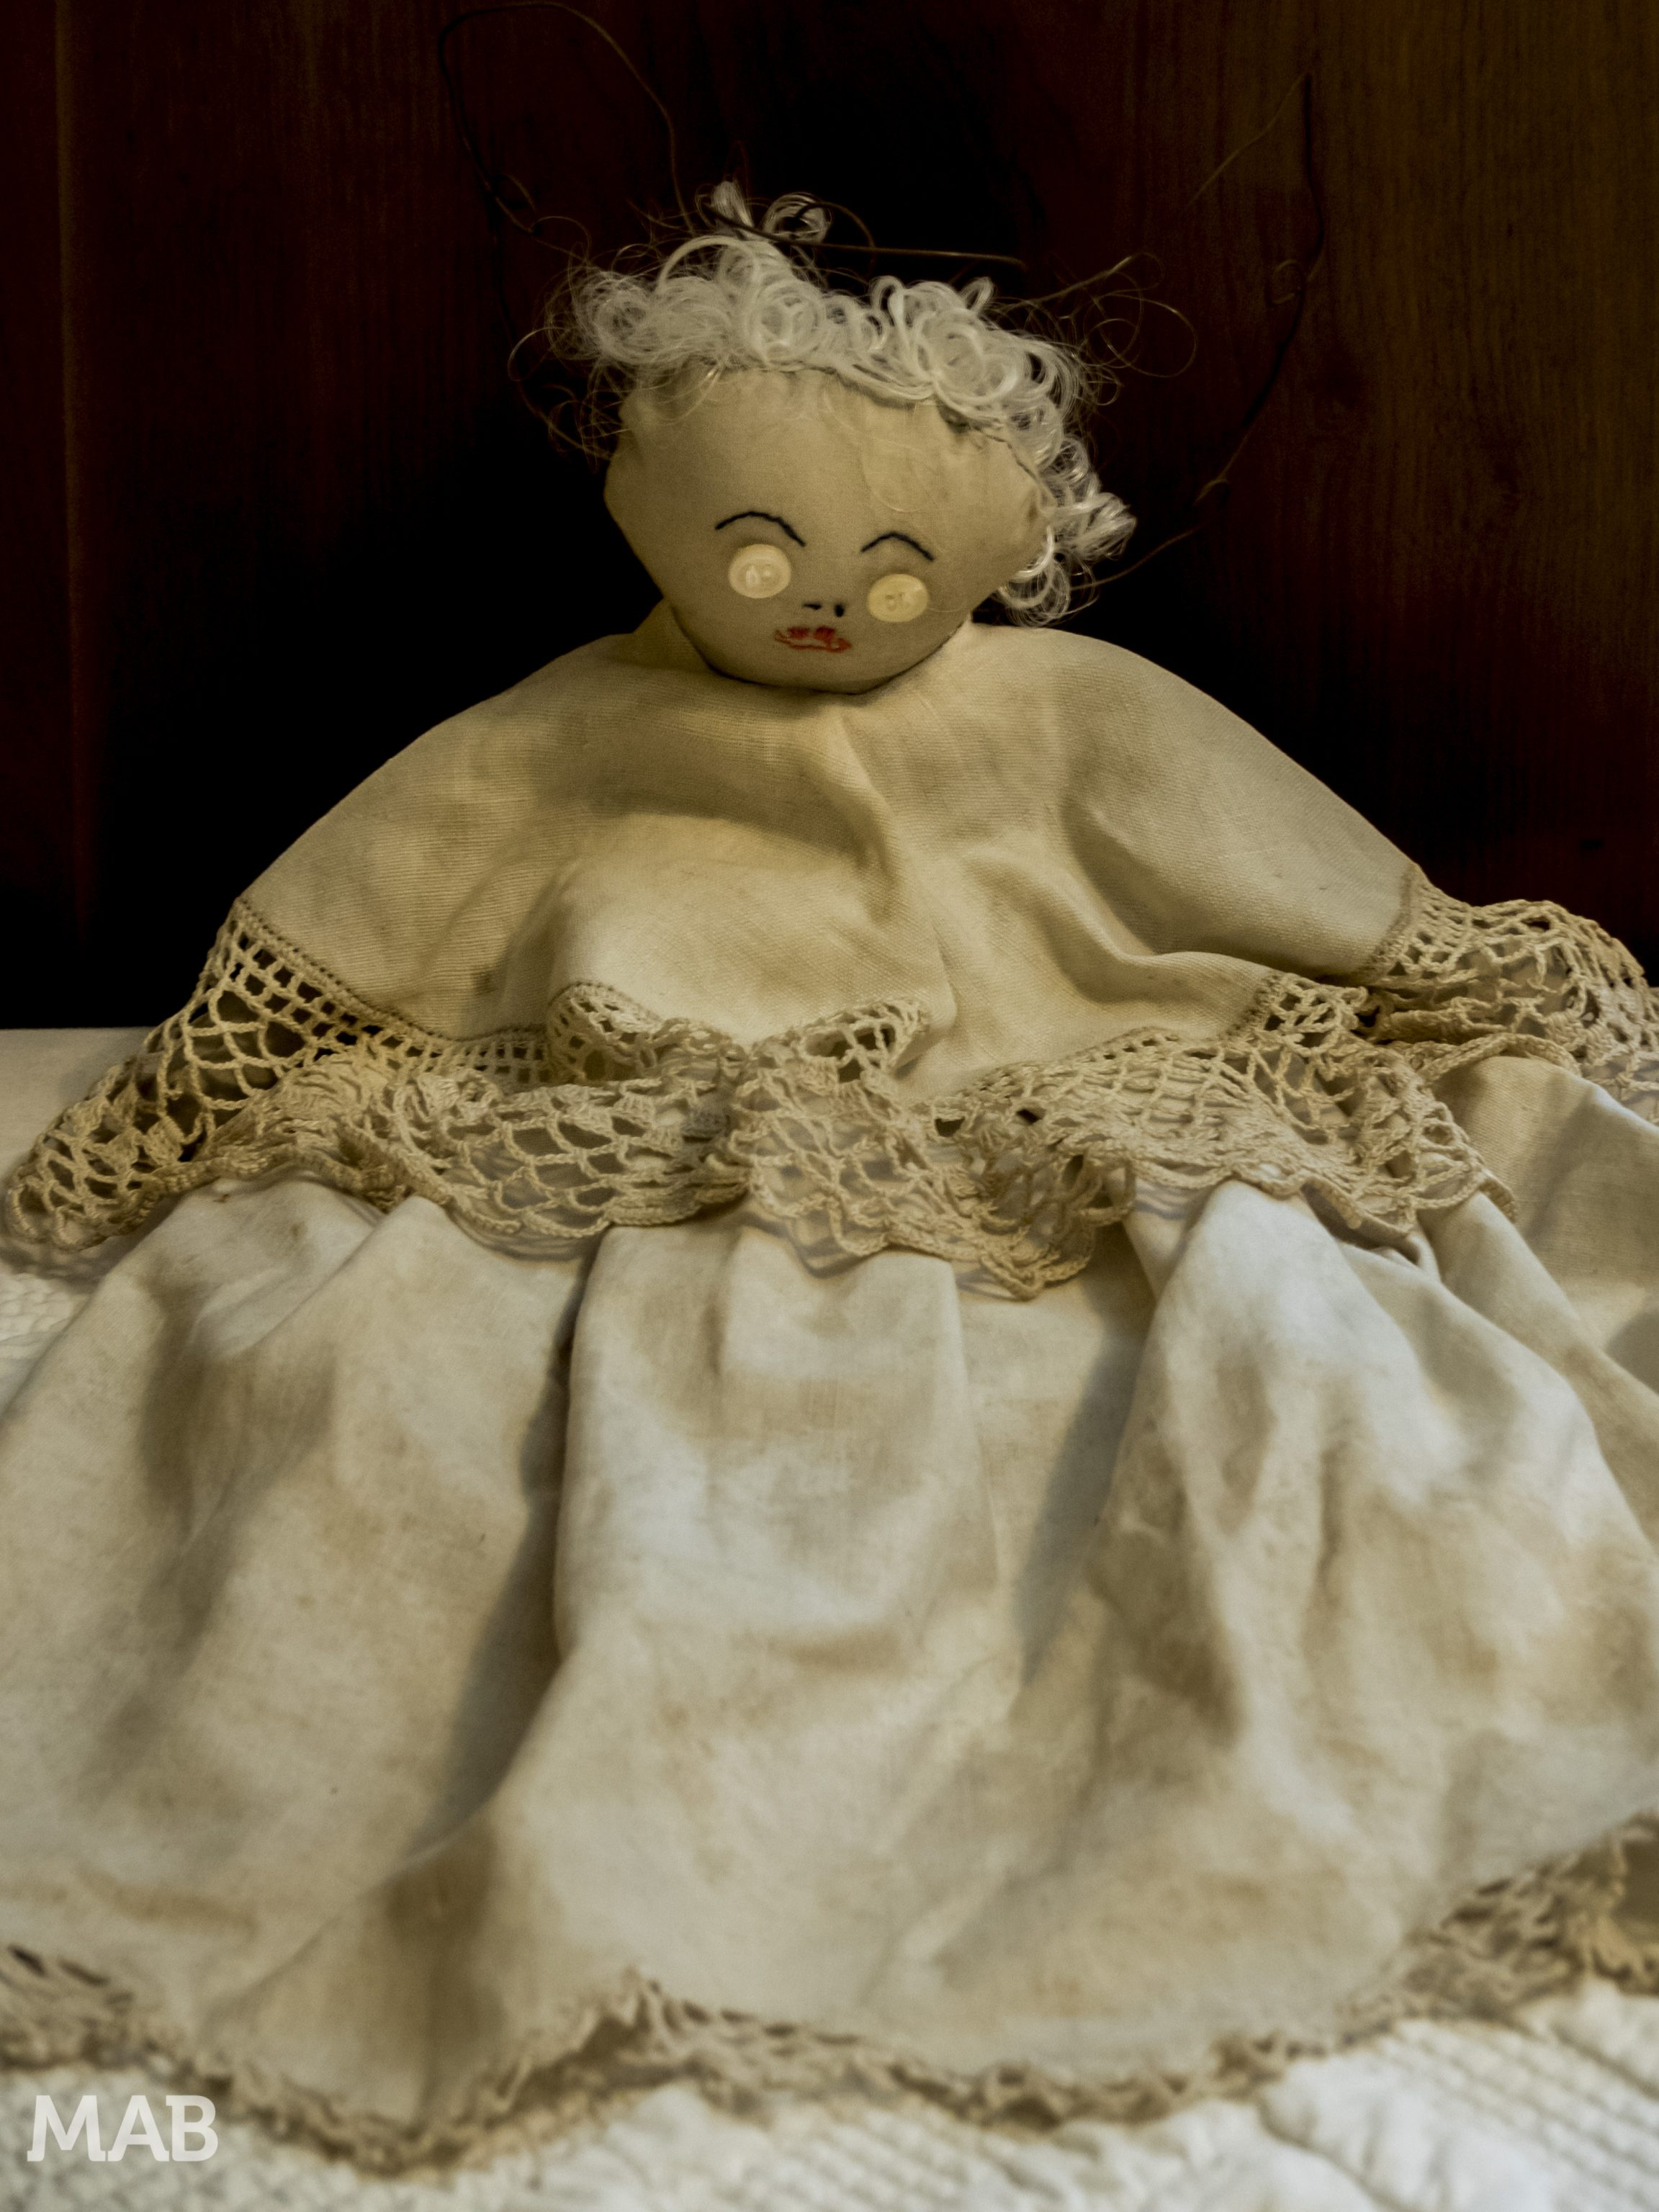 Creepy Old Doll